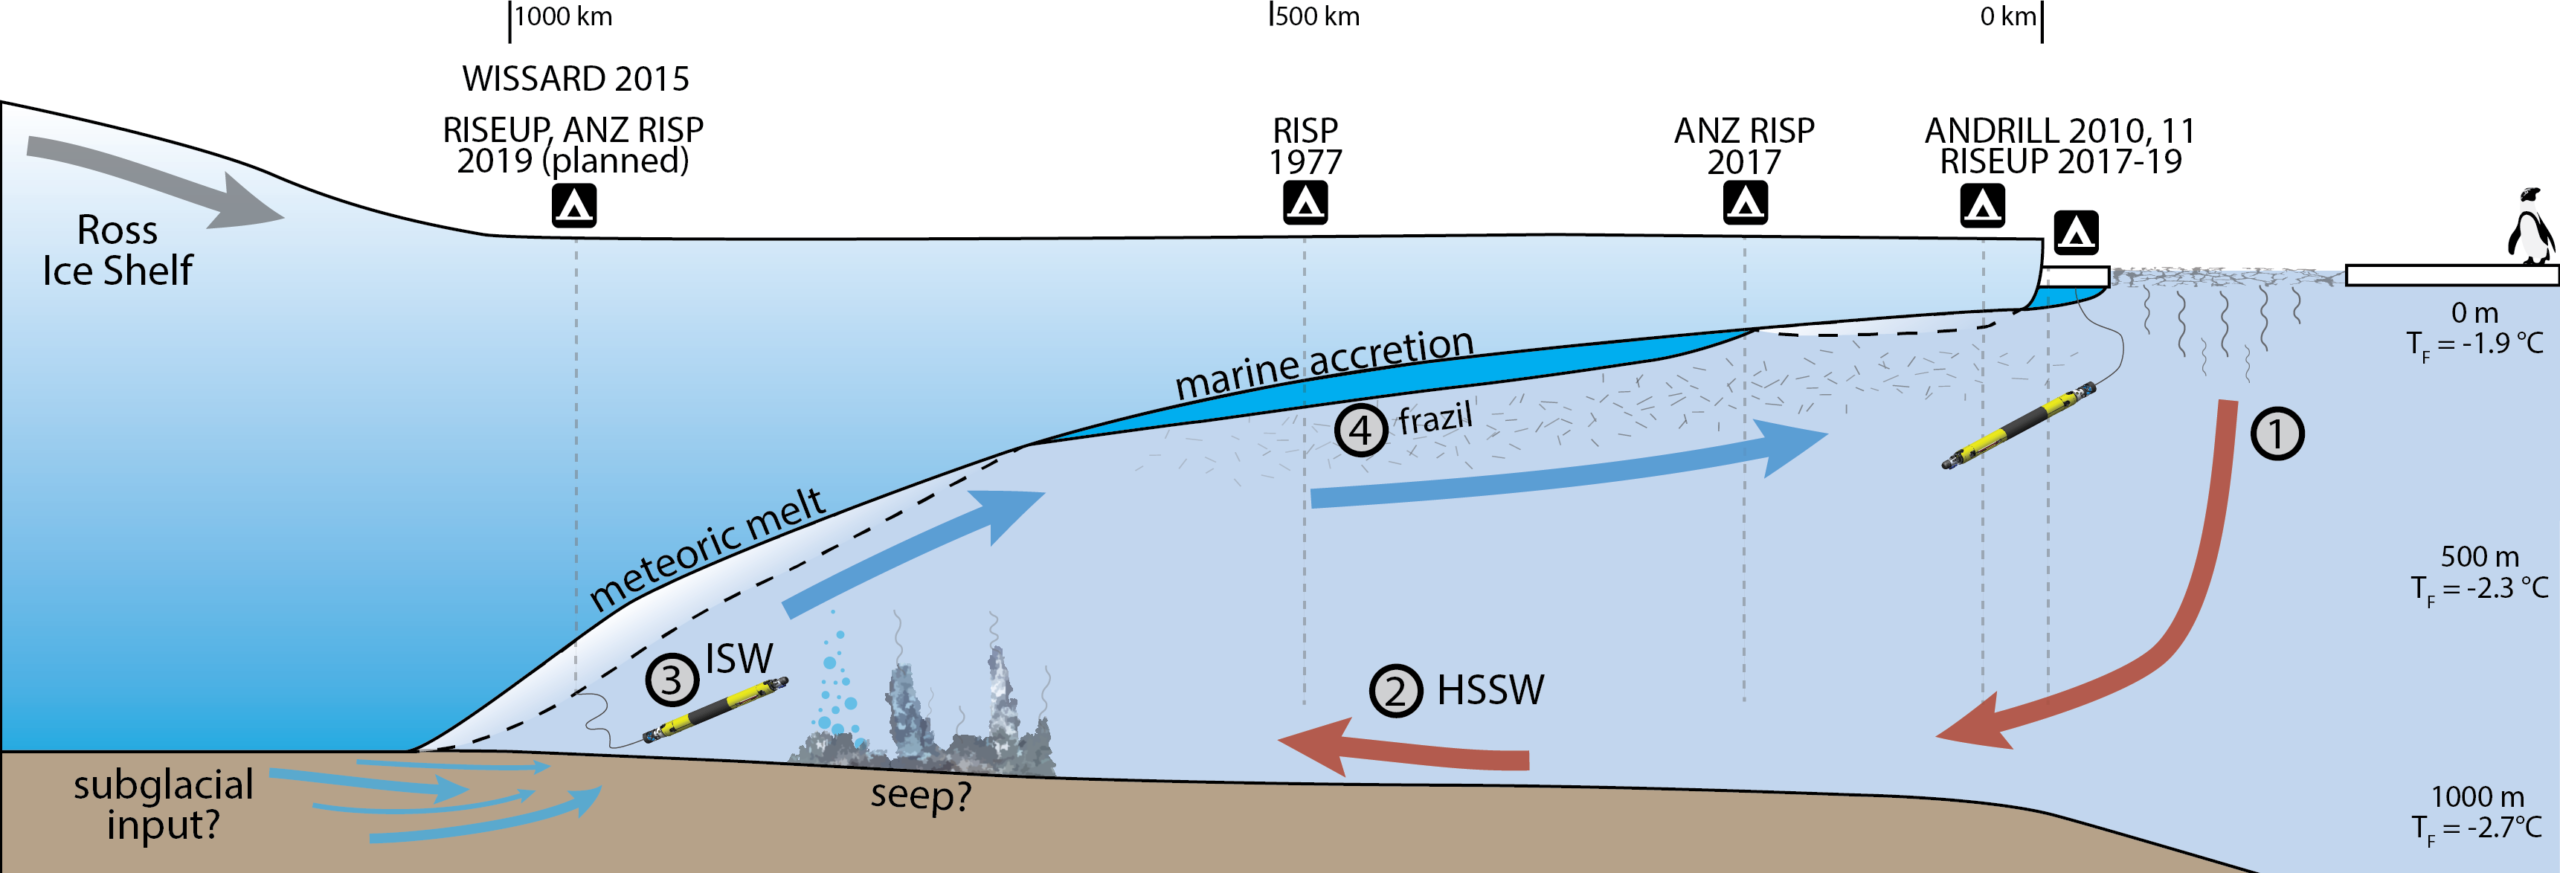 The diagram depicts the unique circulation patterns that result from atmospheric cooling of the surface ocean, sea ice formation, ocean currents, and ice shelf melting to distribute nutrients below Ross Ice Shelf